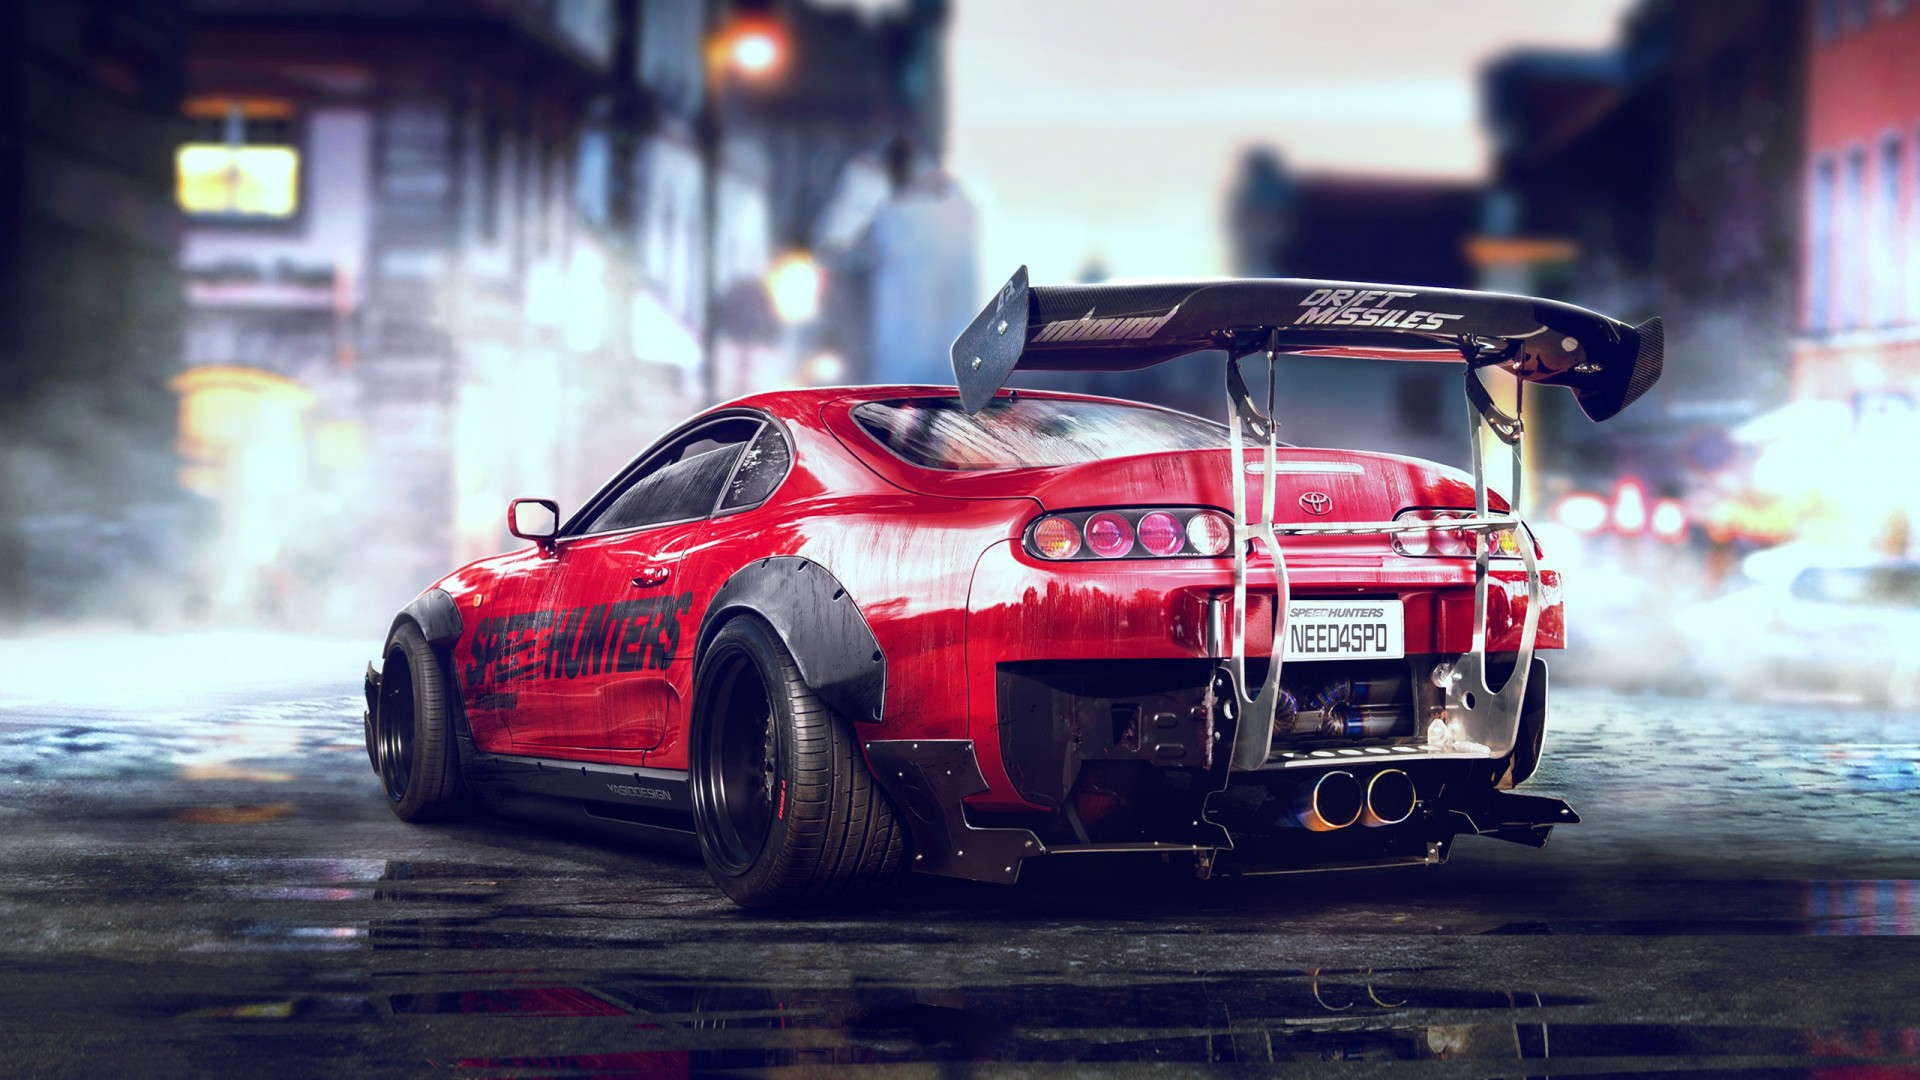 Toyota Supra Sports Car Wallpapers Hd Wallpapers Id 20356